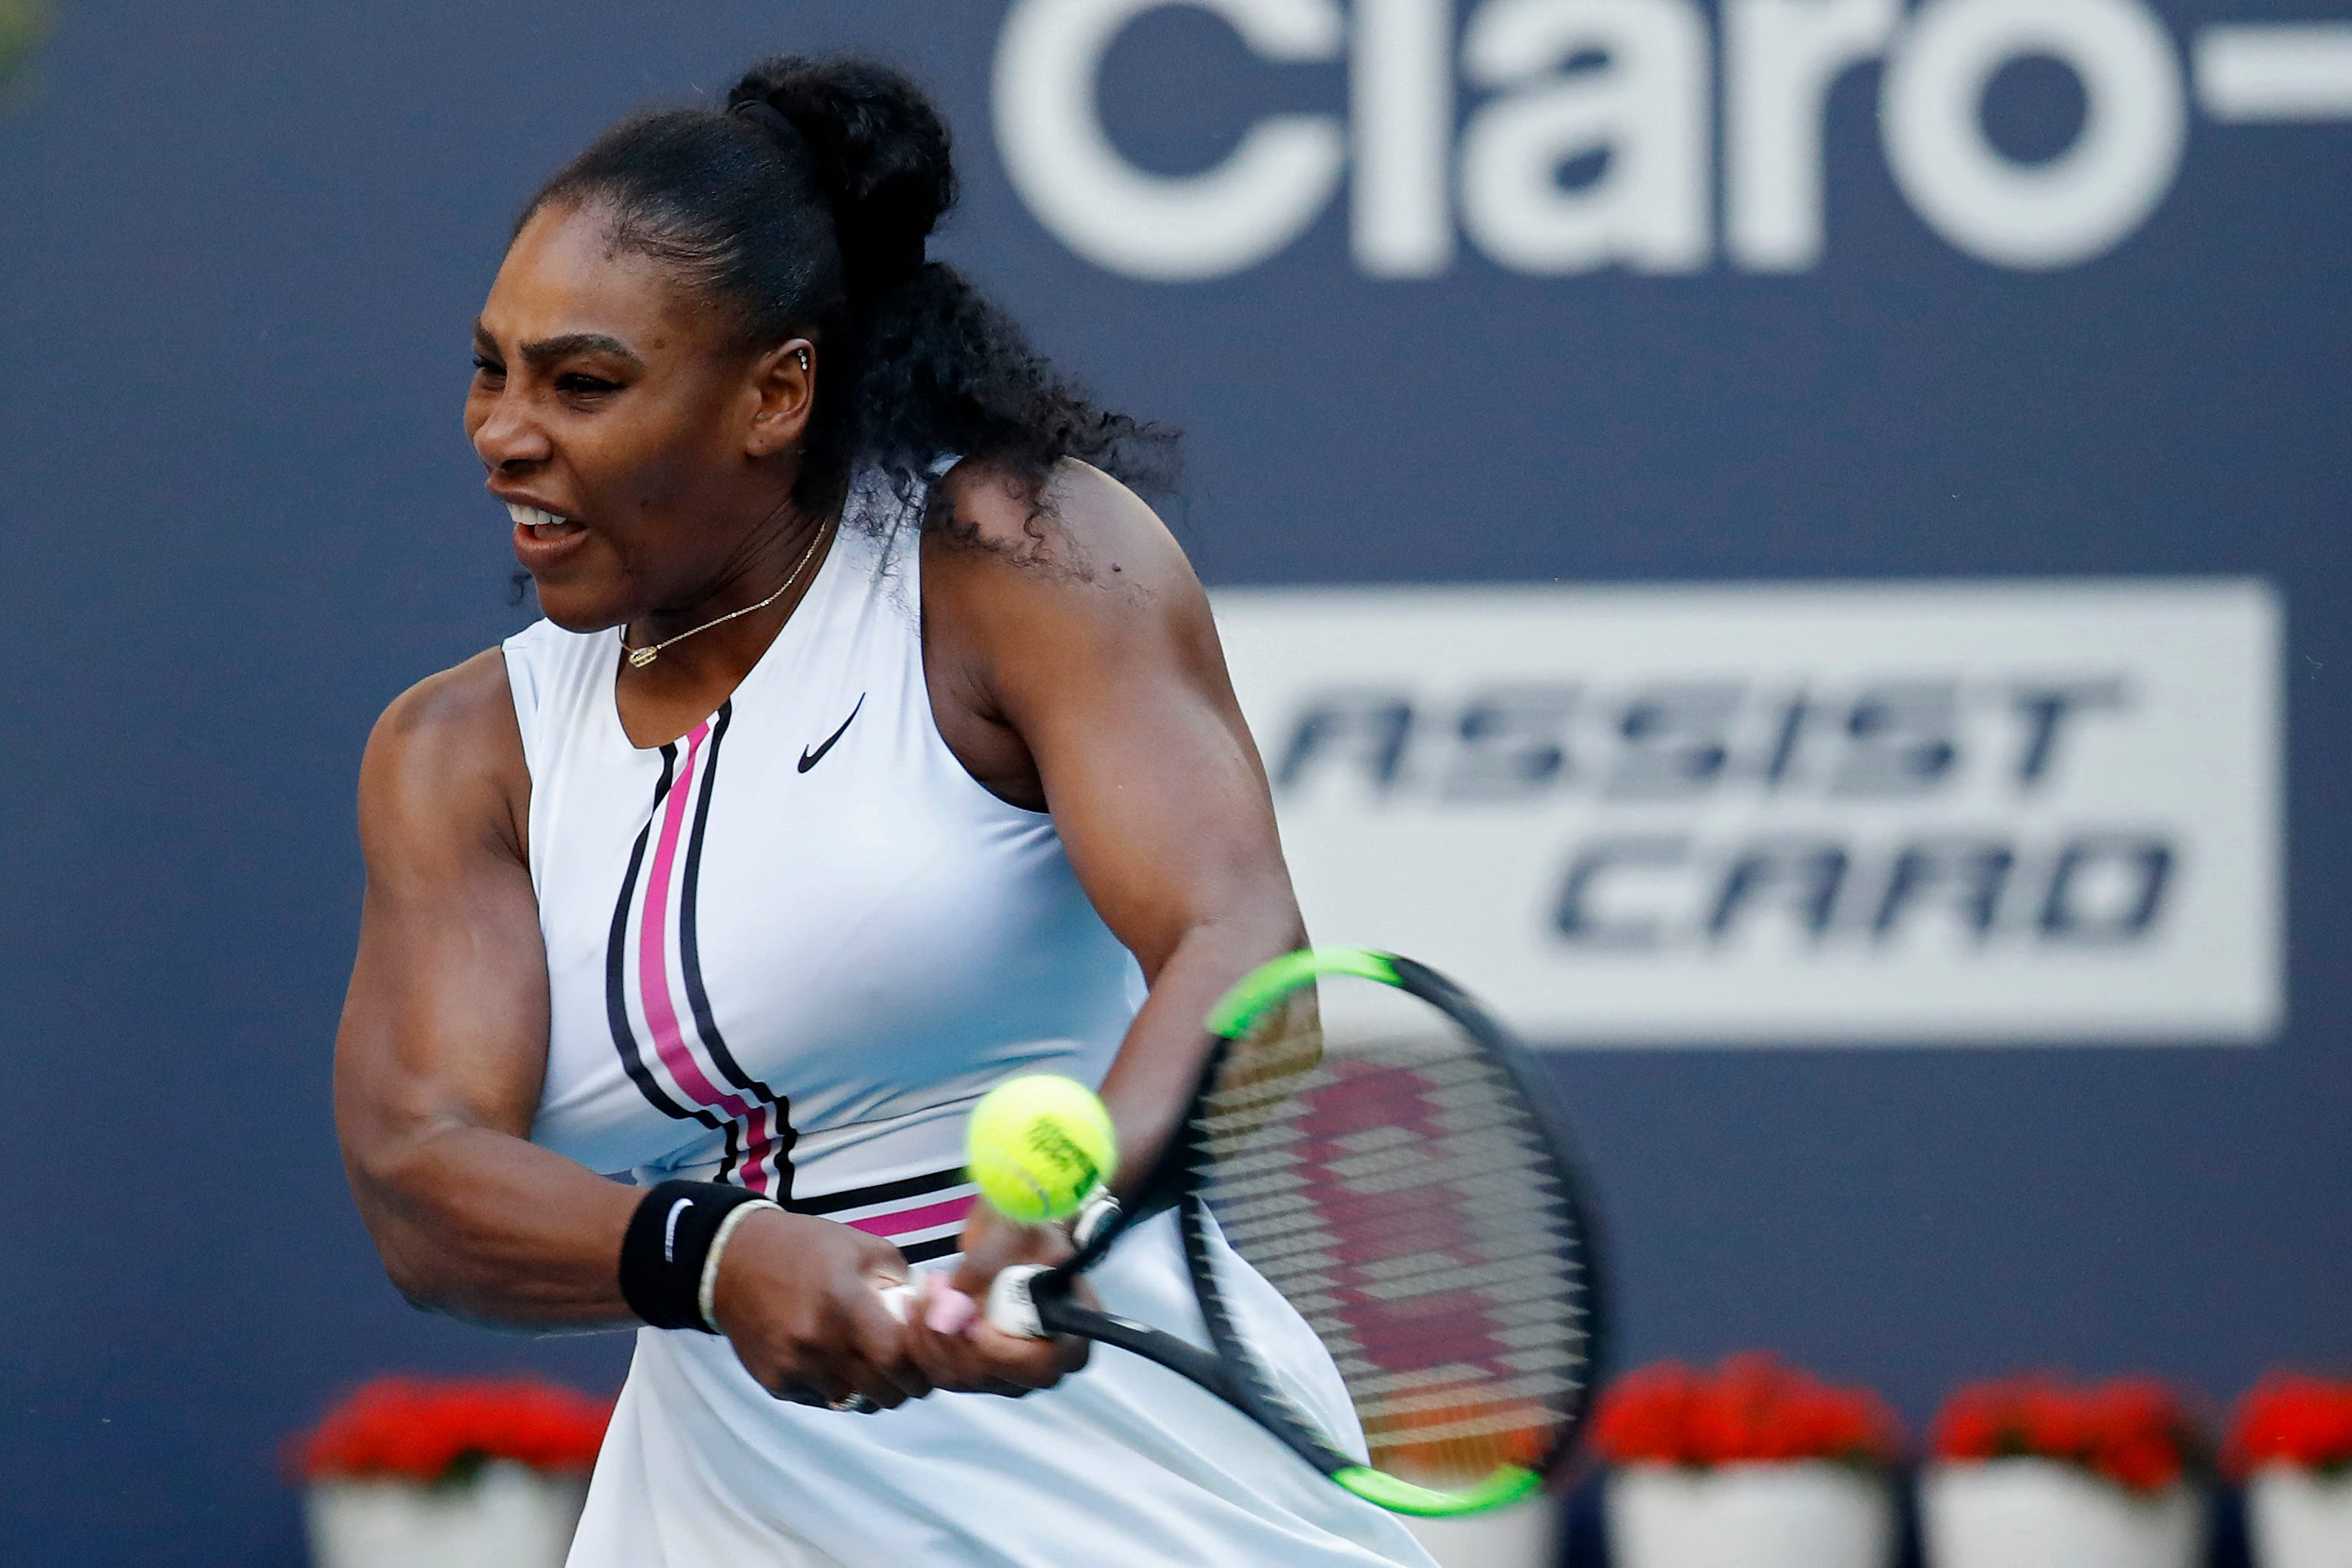 Serena Williams withdraws from Miami Open, citing a left knee injury